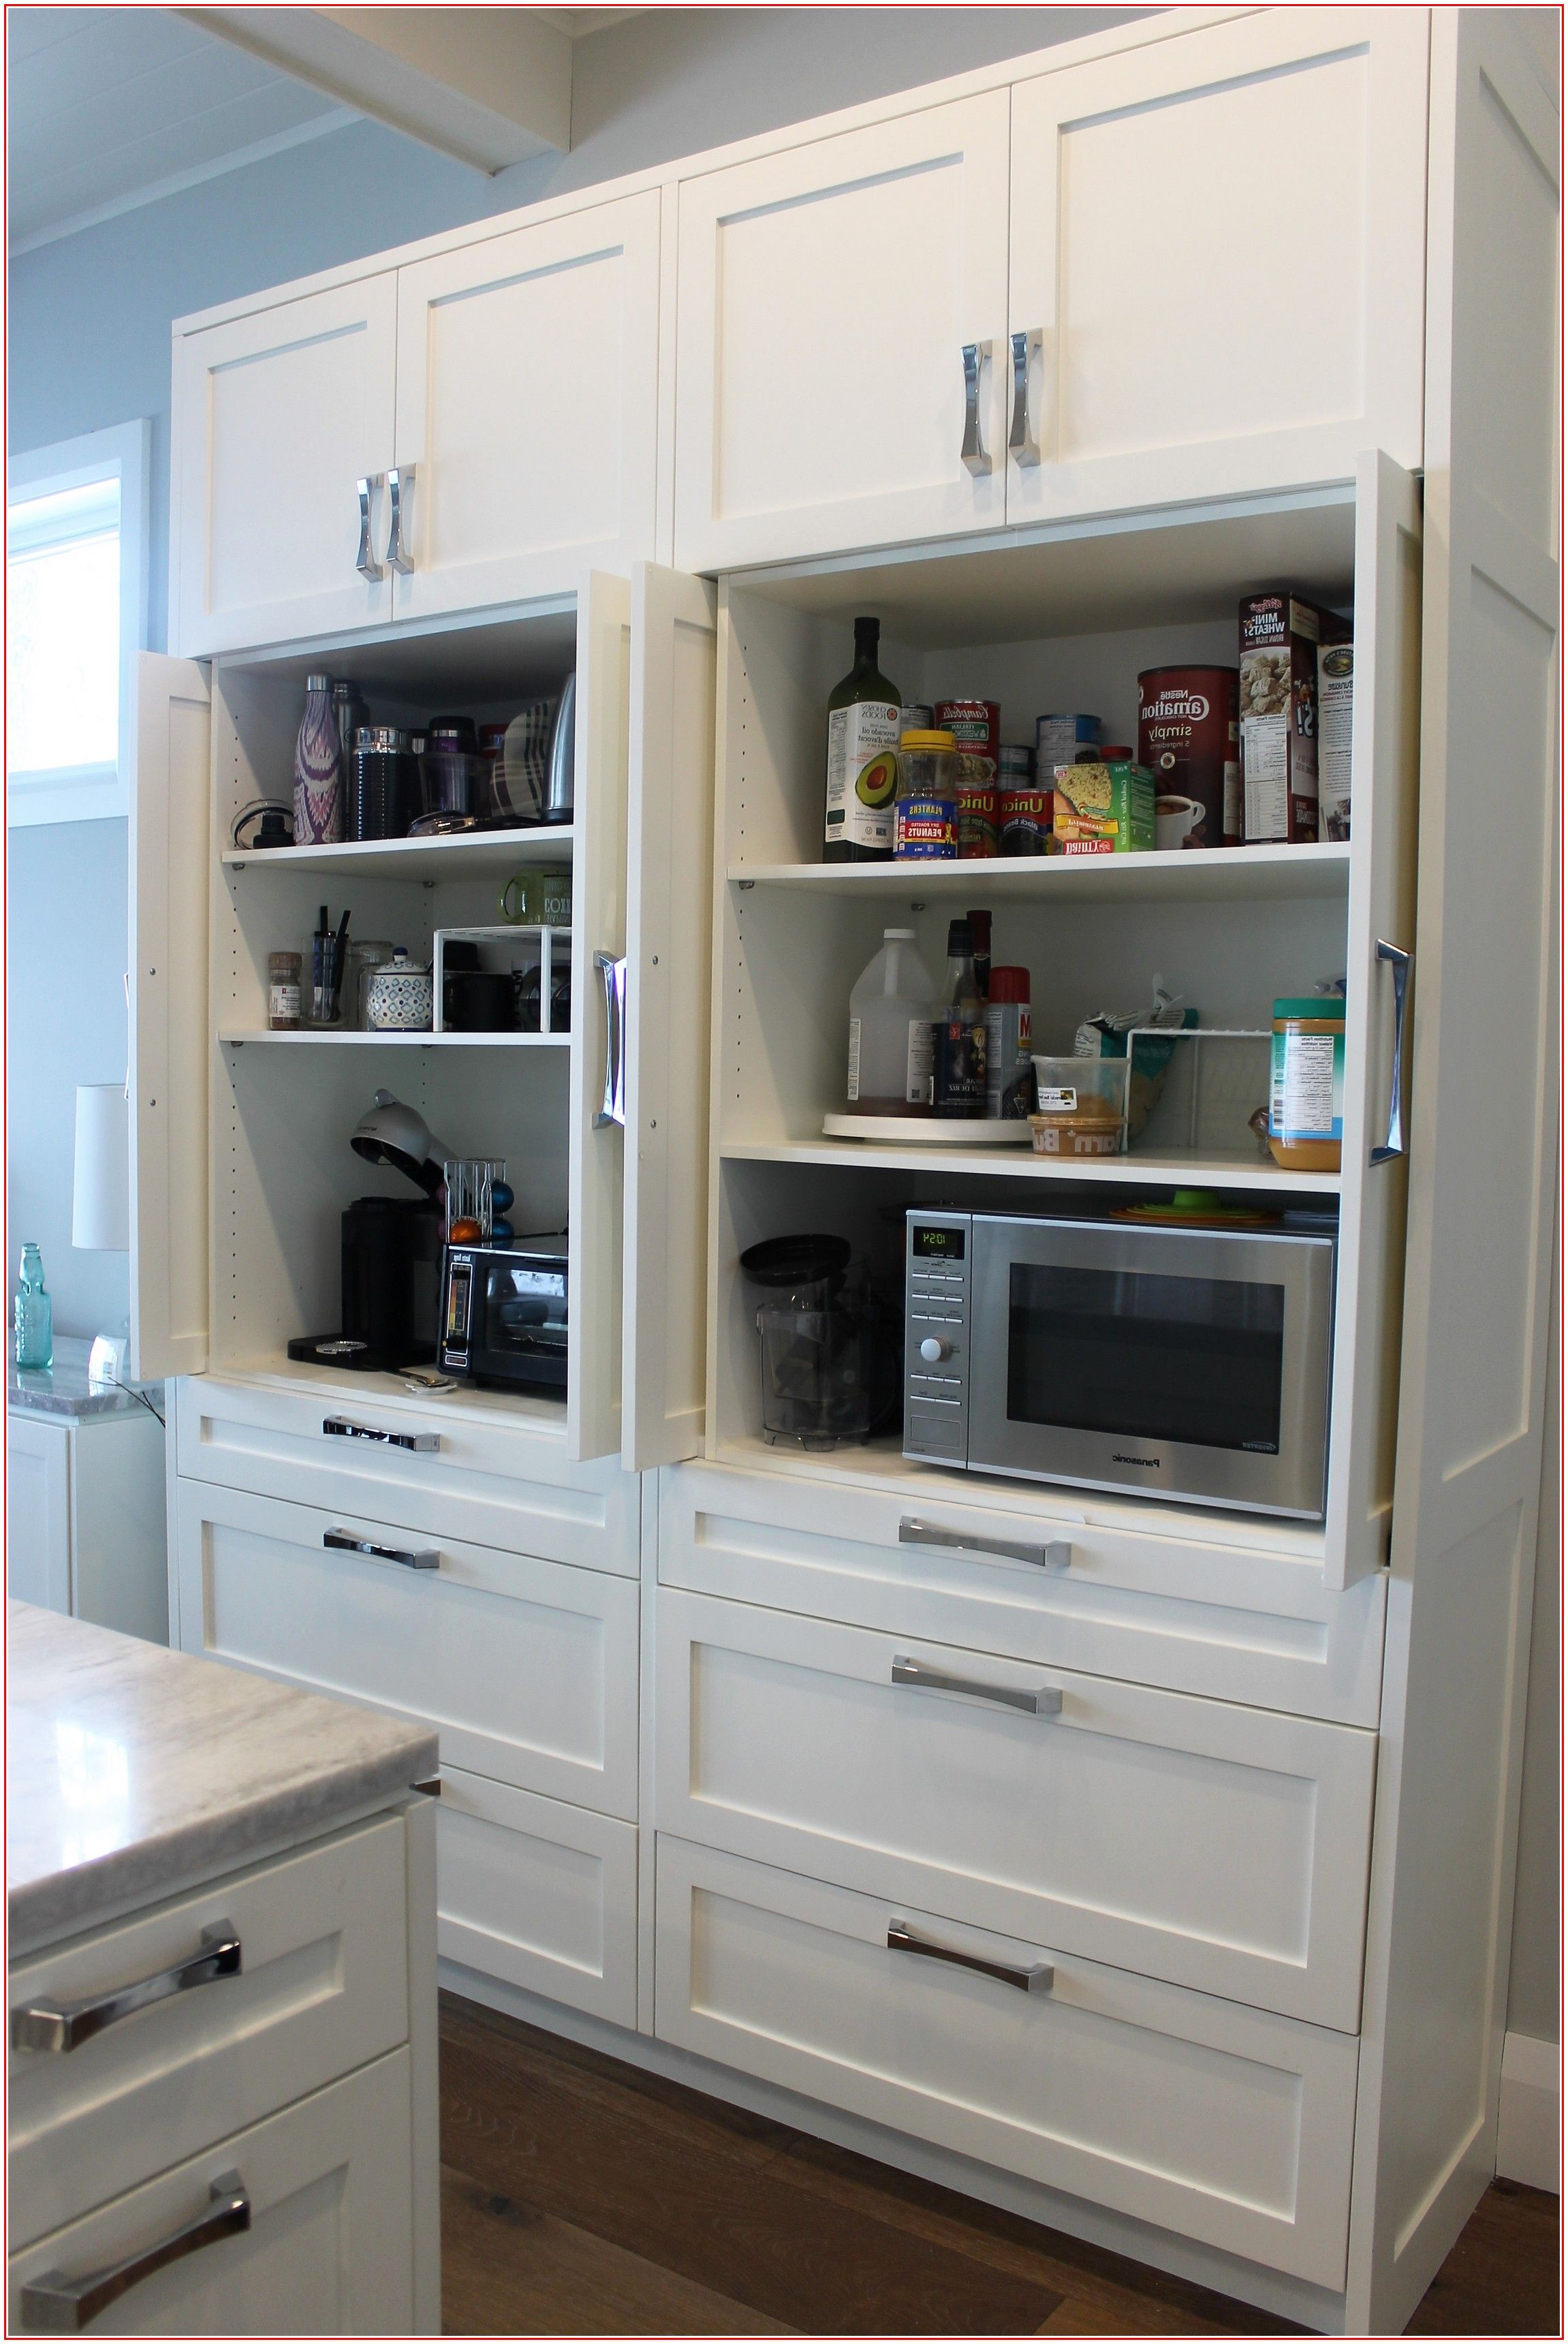 Custom Cabinet Shops Near Me In 2020 Kitchen Cabinets Kitchen Cabinets Prices Building Kitchen Cabinets